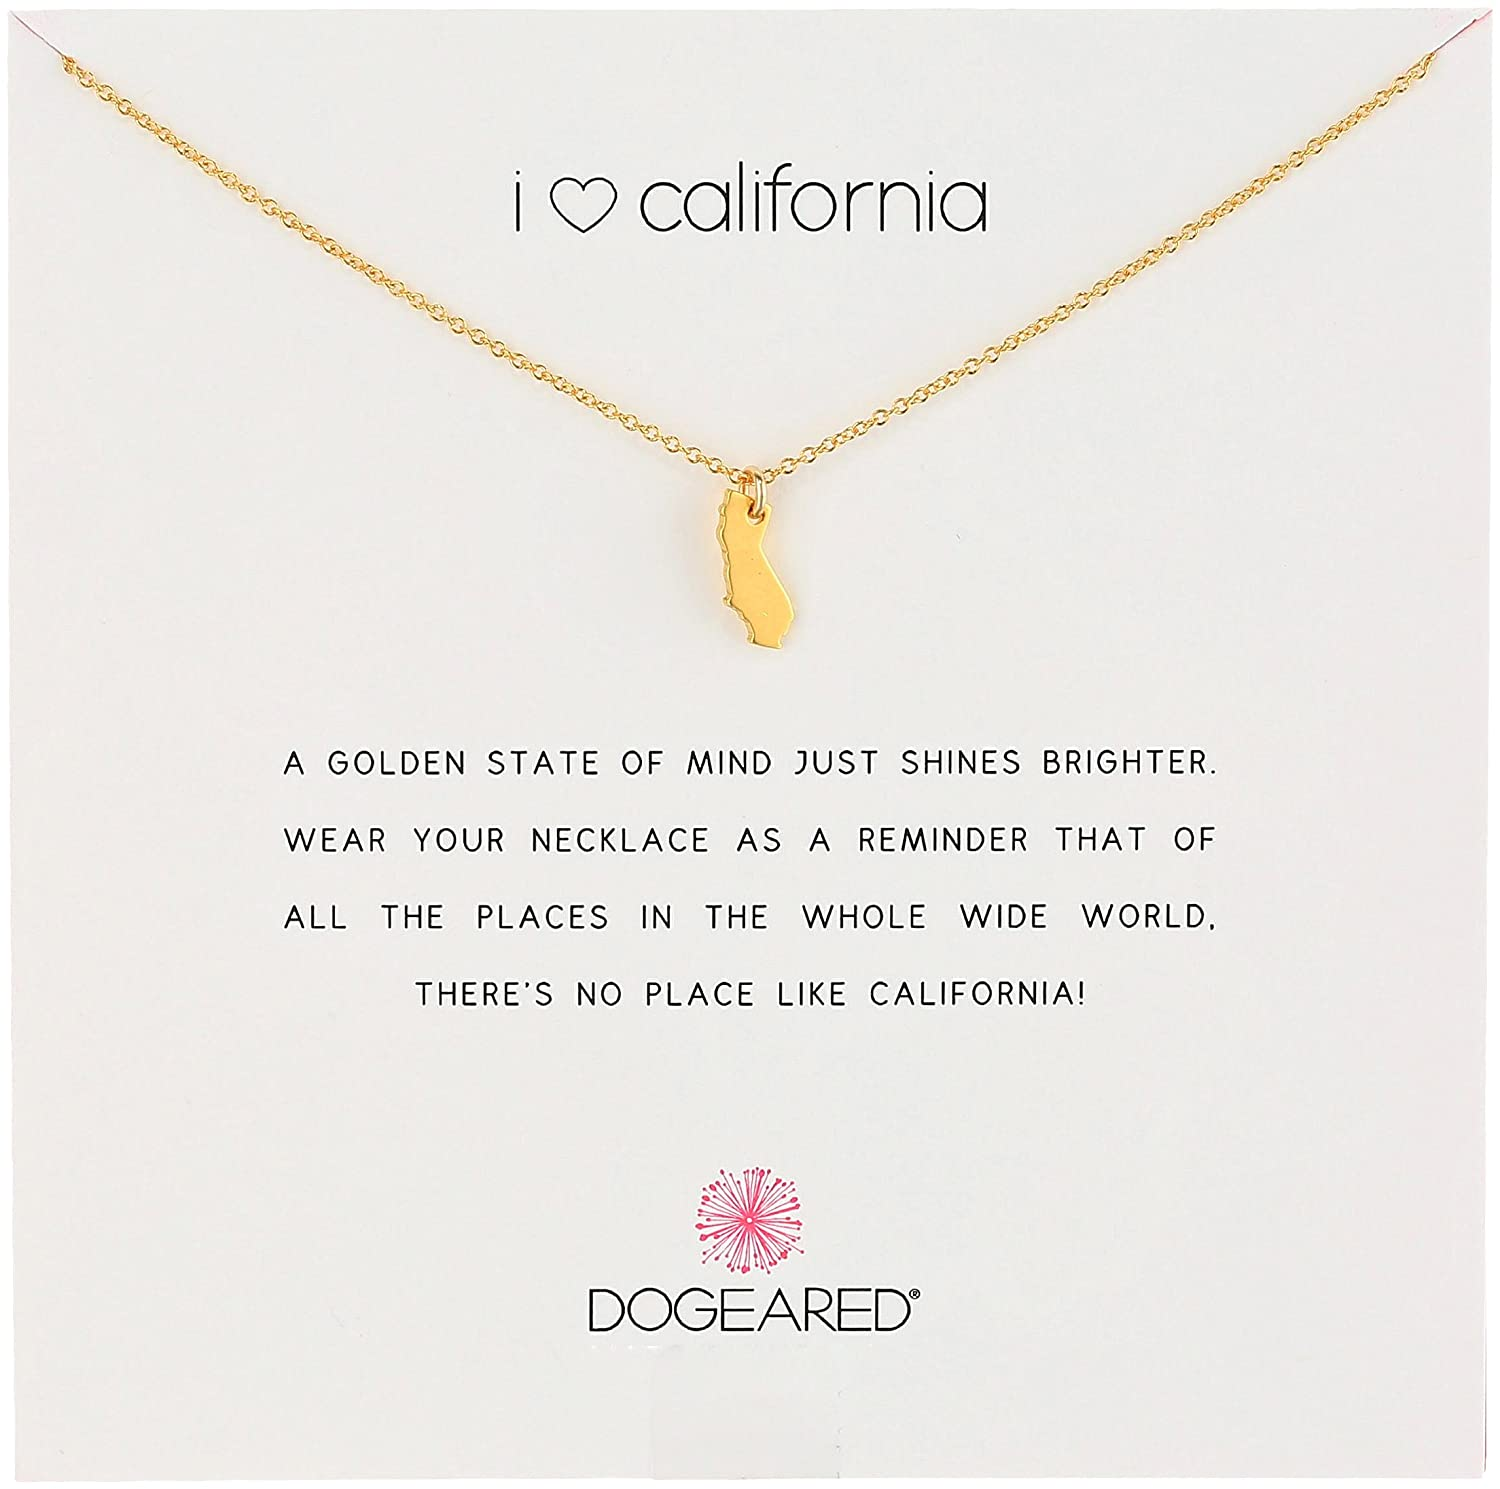 Amazon dogeared reminders i love california gold dipped amazon dogeared reminders i love california gold dipped california state charm necklace 162 extender jewelry aloadofball Image collections